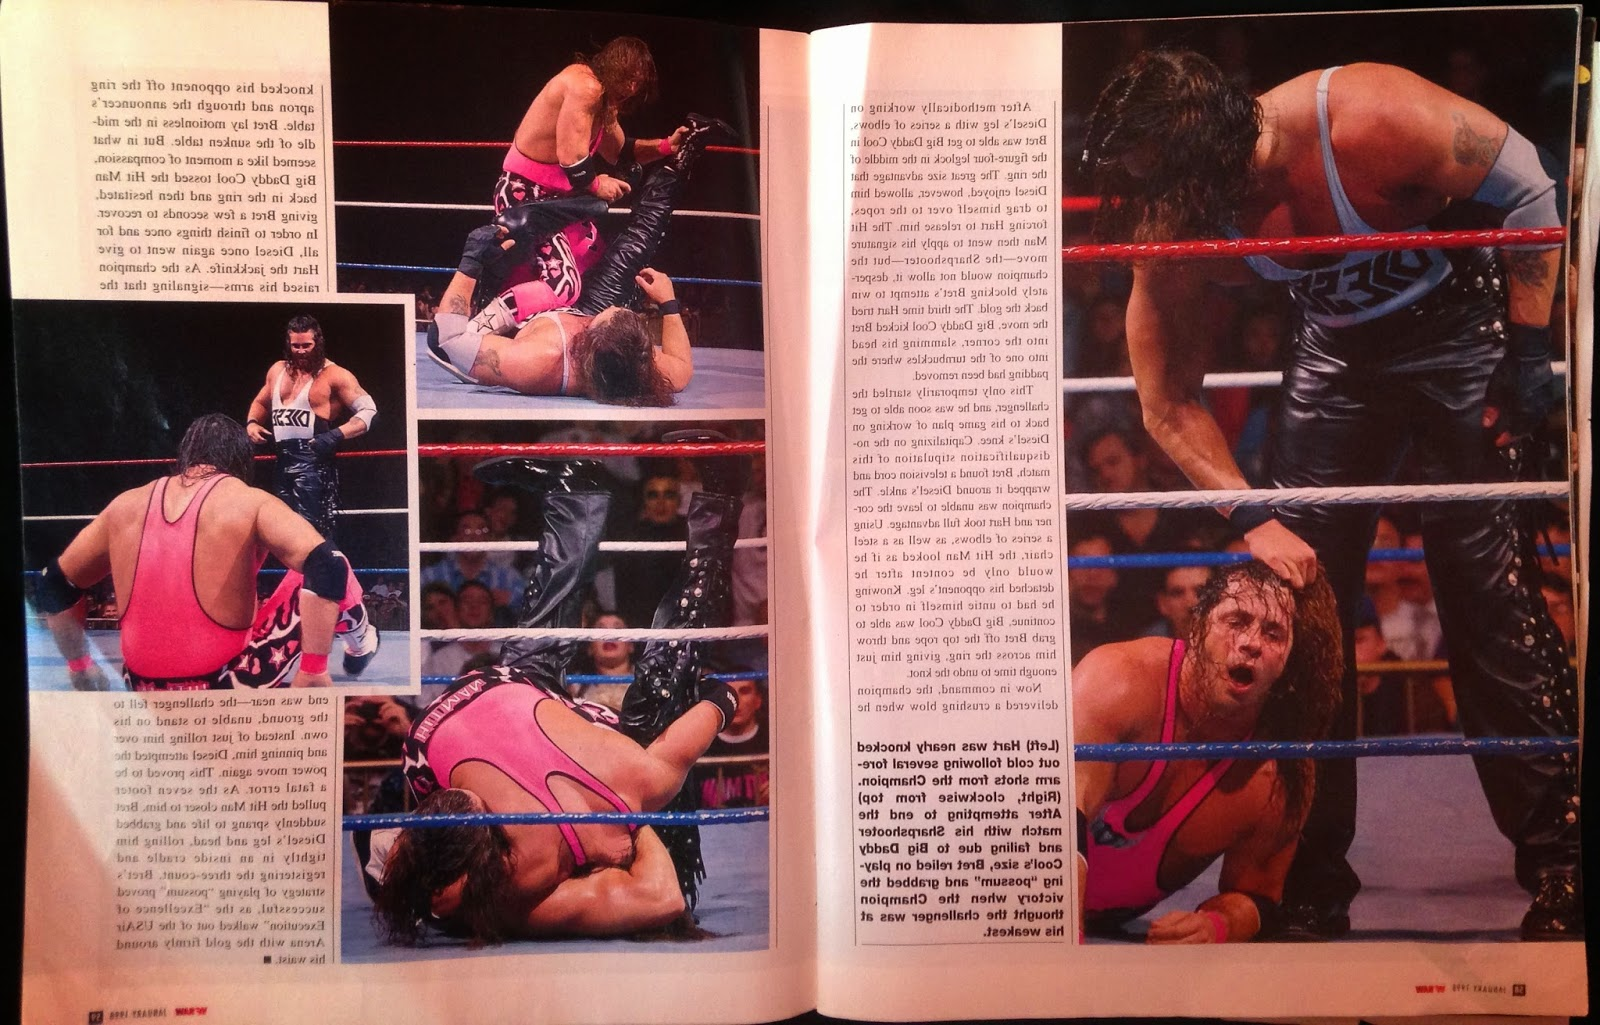 WWE: WWF RAW MAGAZINE - January 1998 - More Bret Hart vs. Diesel coverage